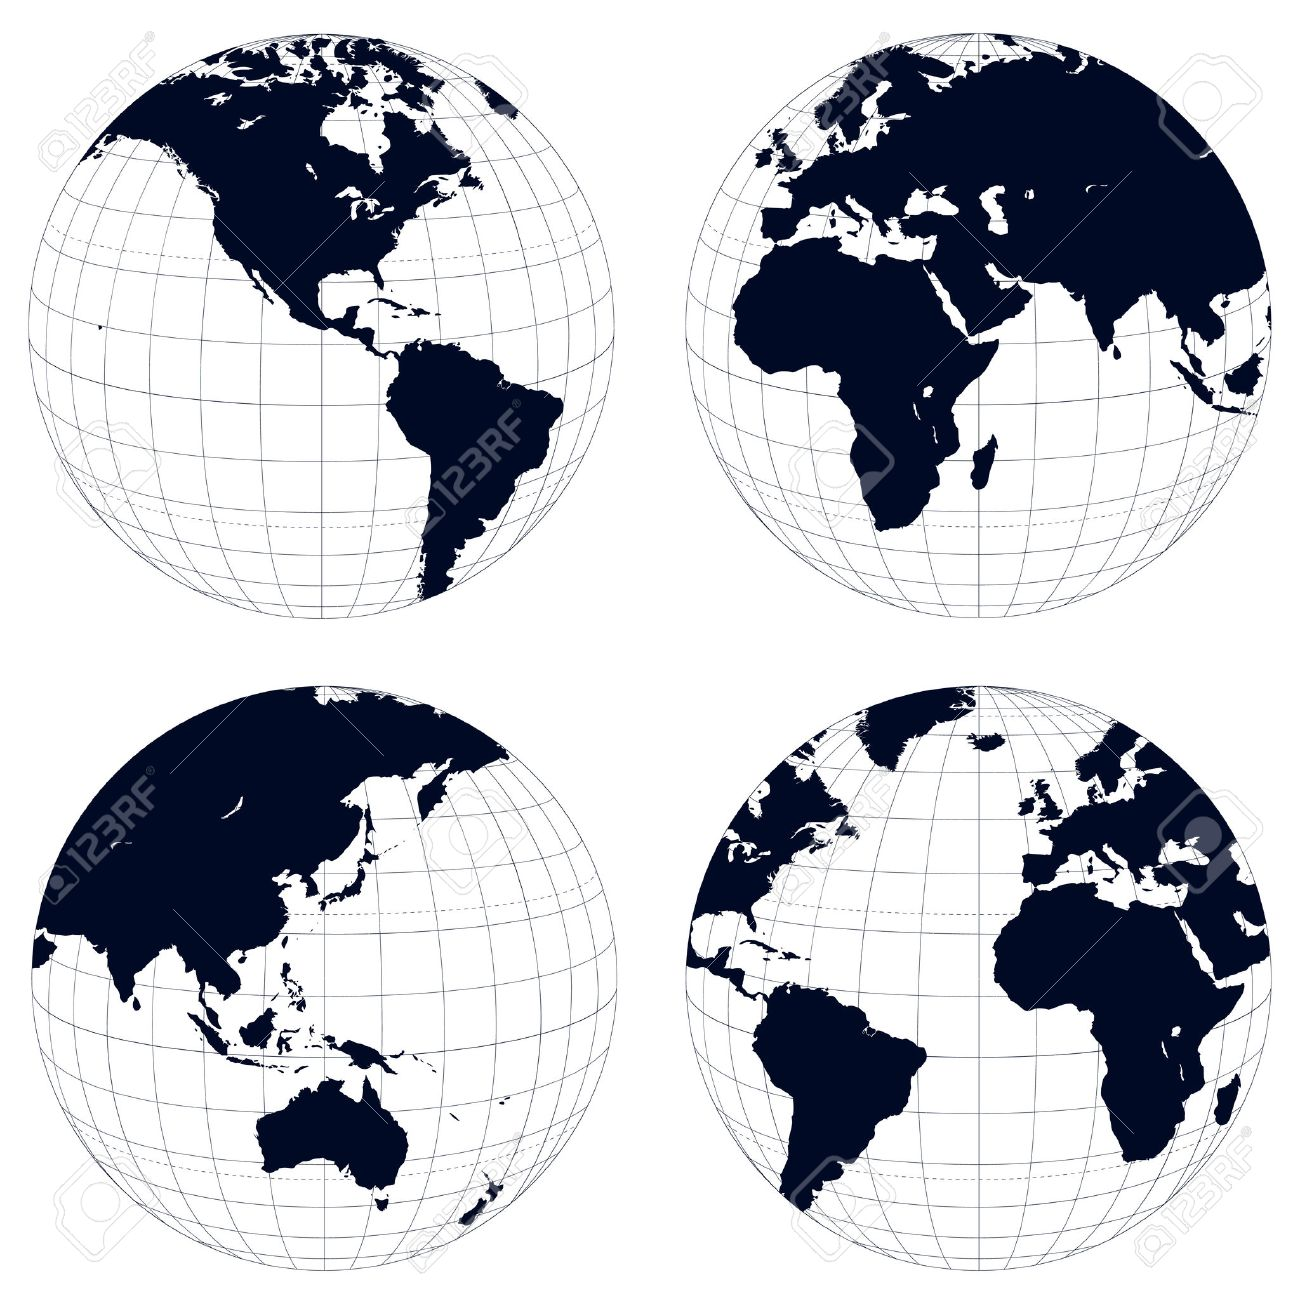 Earth globes, black and white detailed vector illustration. - 8958422